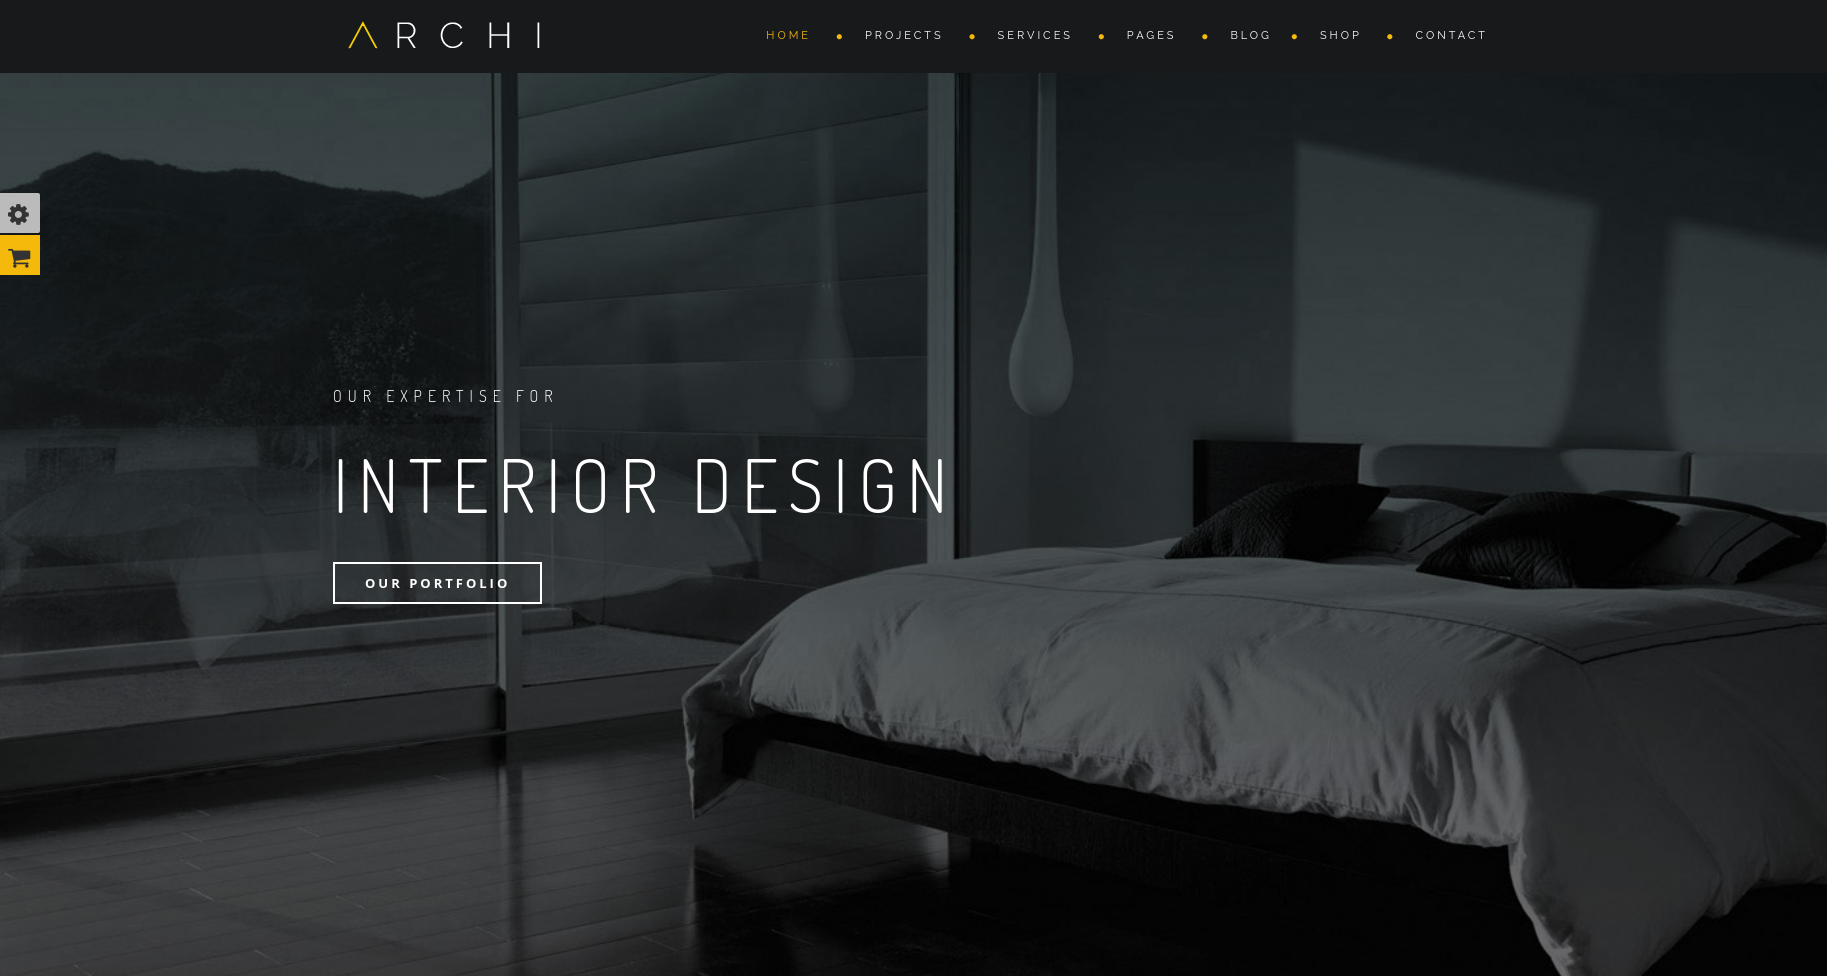 Archi dark WordPress theme